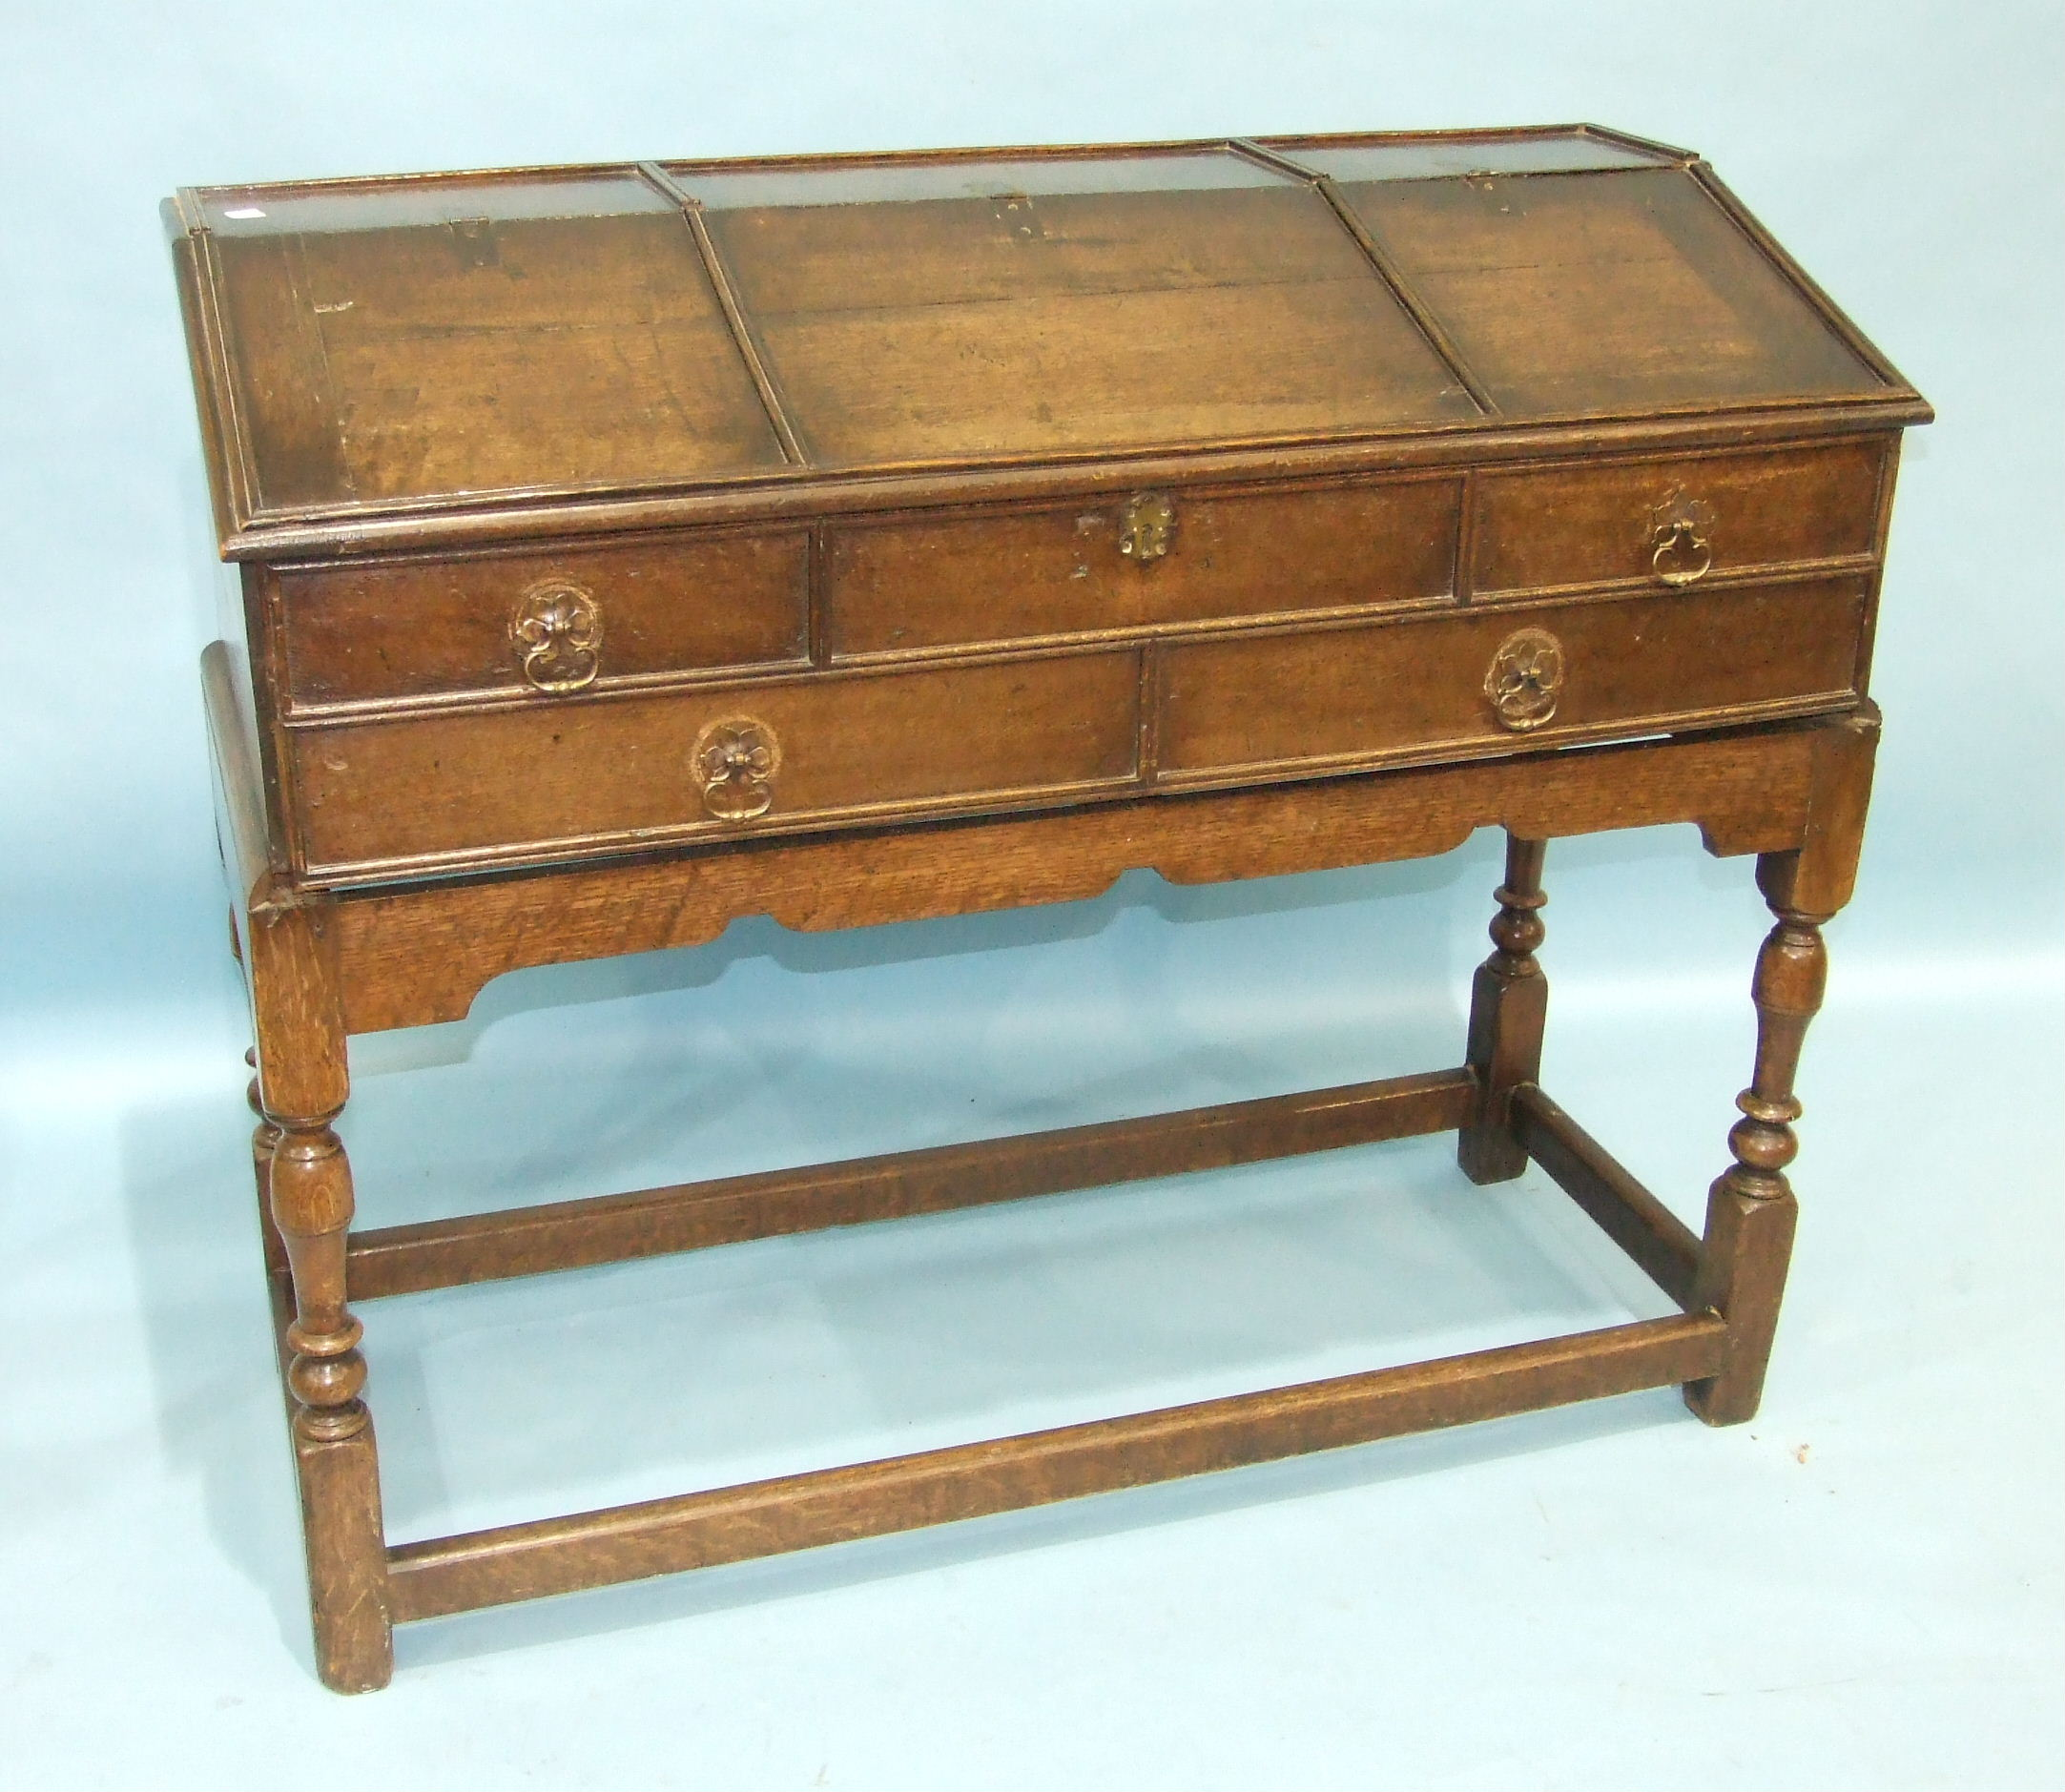 Lot 94 - An antique oak fall-front clerk's desk enclosing a fitted interior, on turned legs joined by